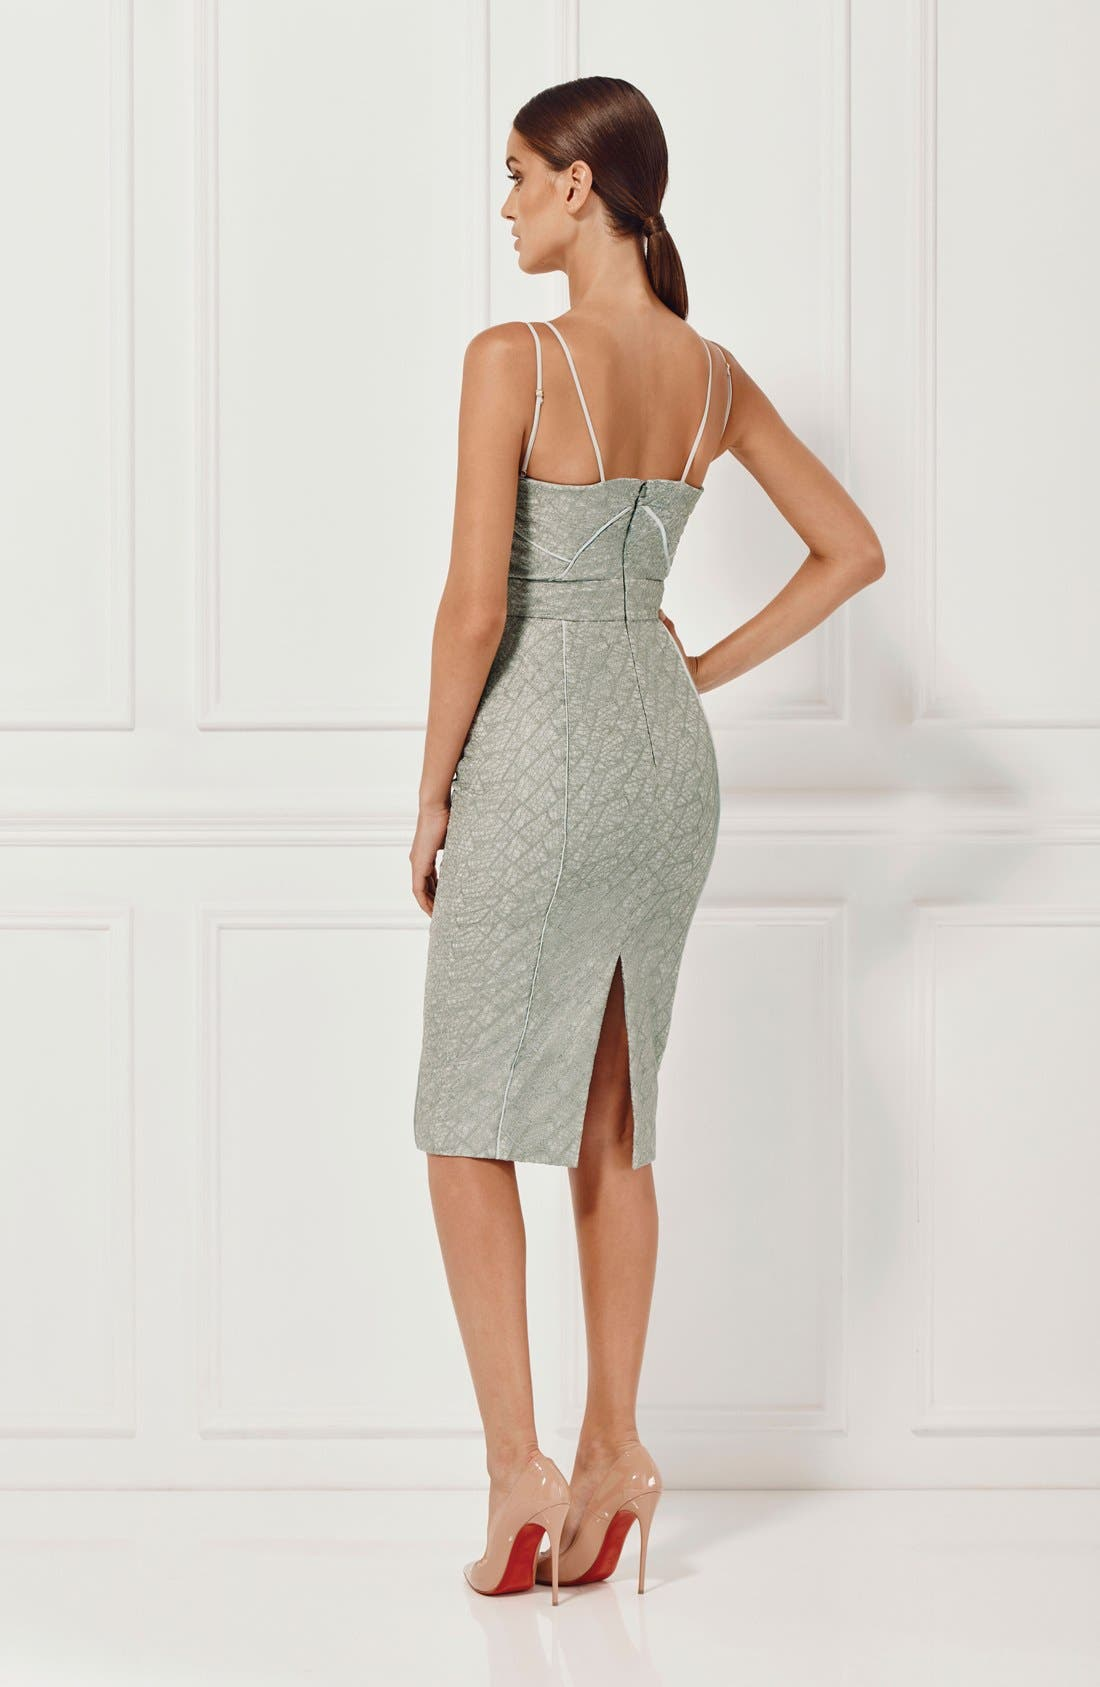 'Milly' Embroidered Mesh Midi Dress,                             Alternate thumbnail 3, color,                             230